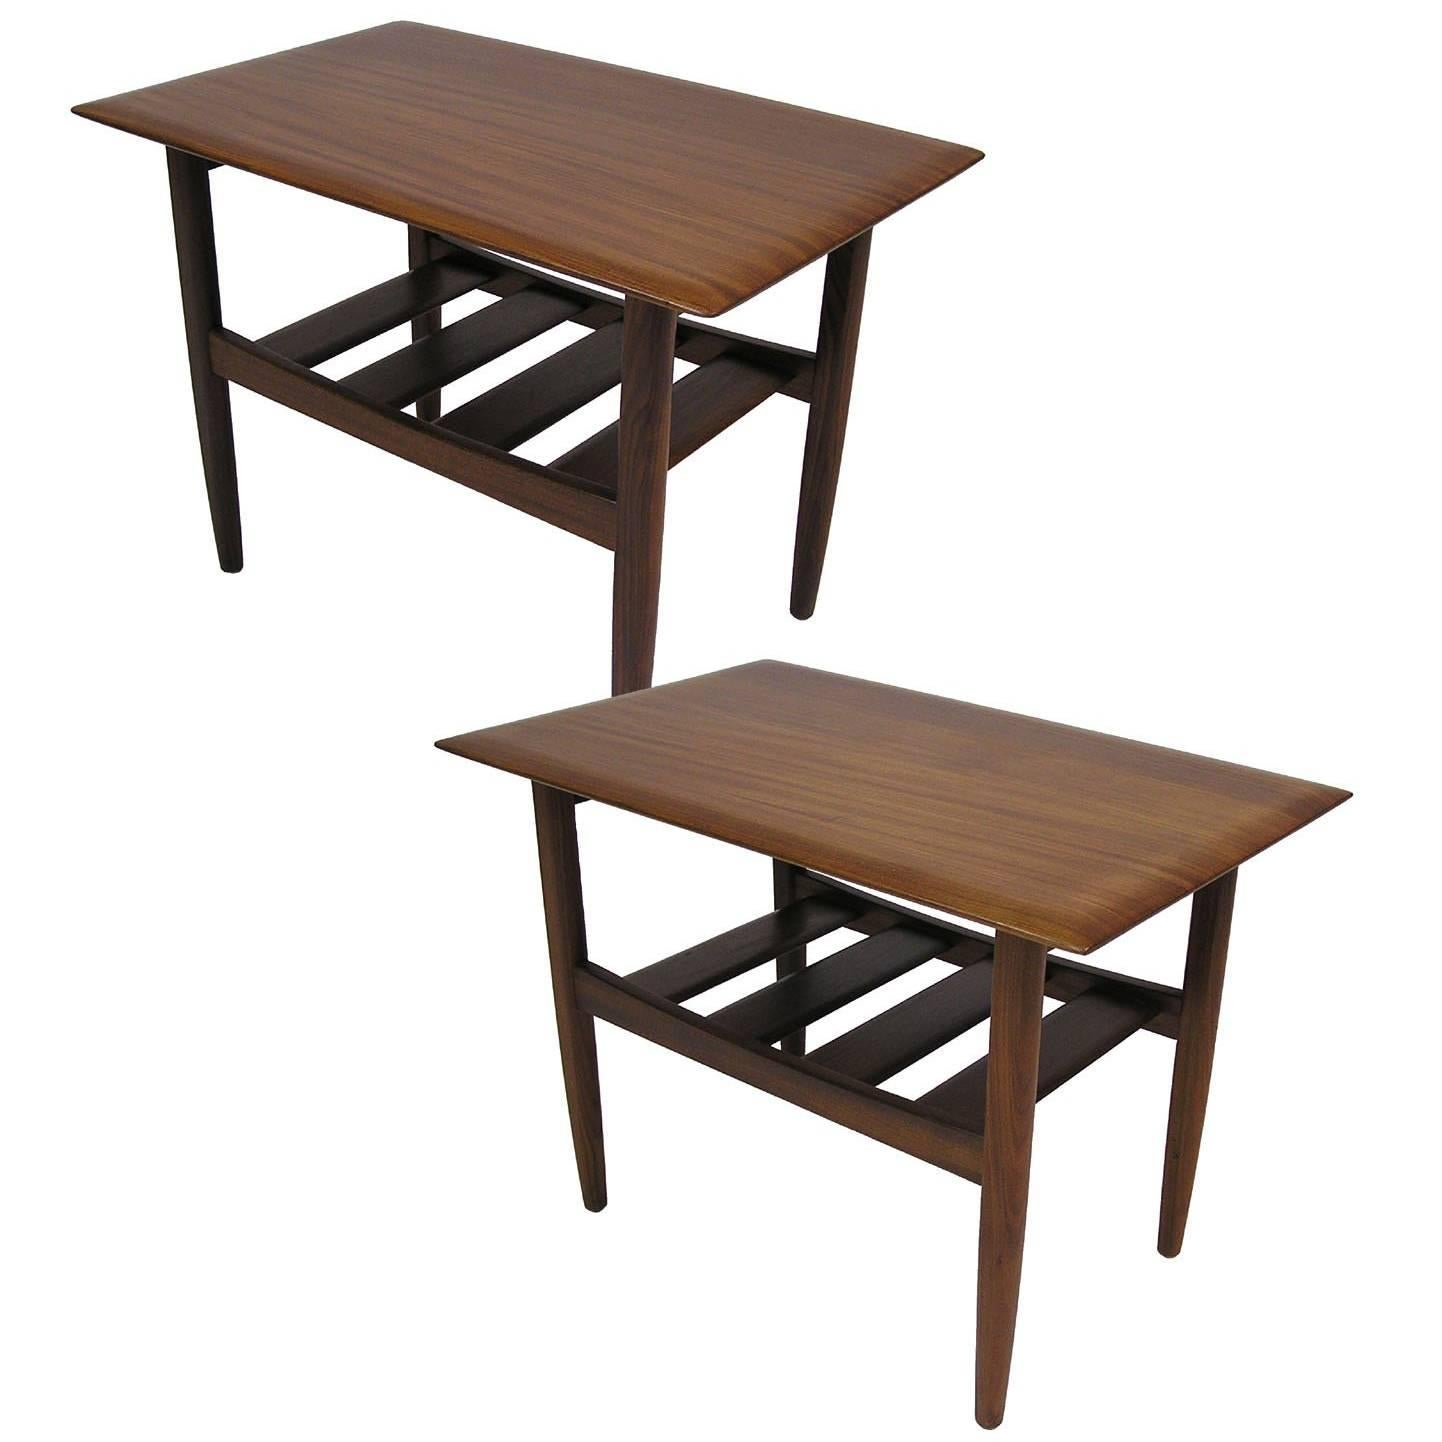 1960s solid teak midcentury modern side tables by jan kuypers pair 1